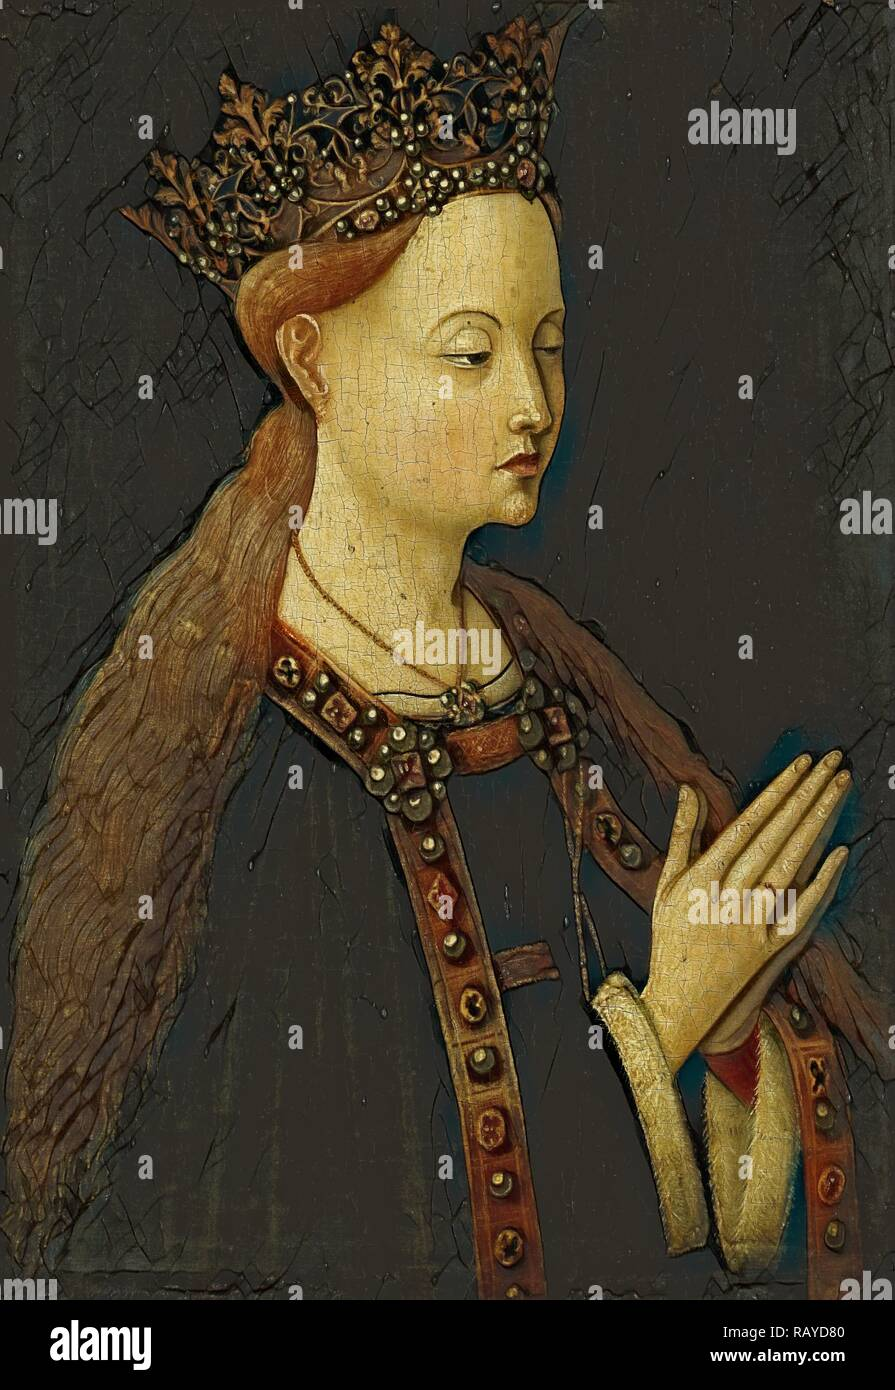 The Virgin, Anonymous, c. 1500. Reimagined by Gibon. Classic art with a modern twist reimagined - Stock Image